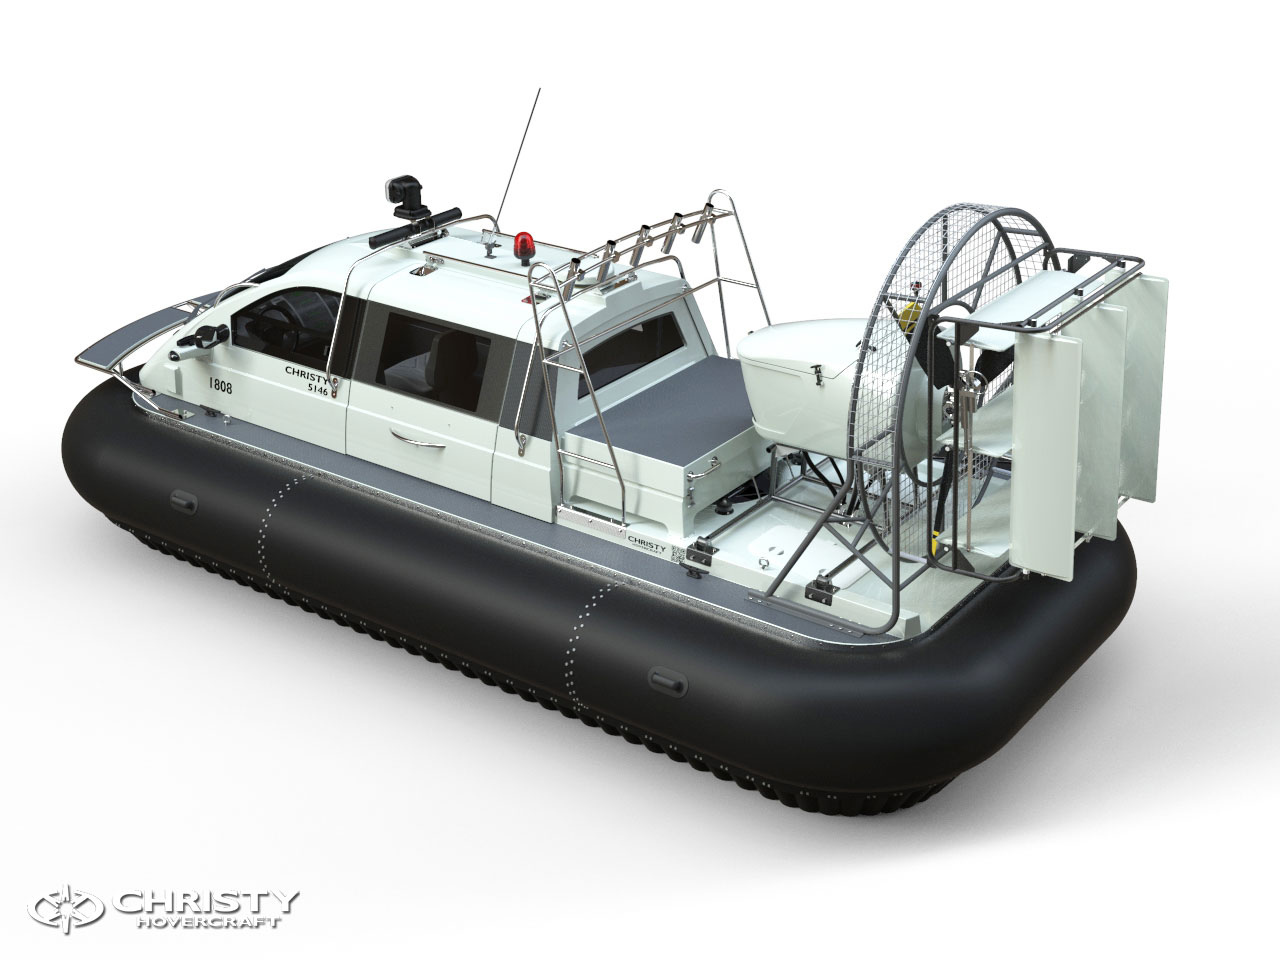 Hovercraft-Christy-5146-FC-Trolling-Edition-(1).jpg | фото №3